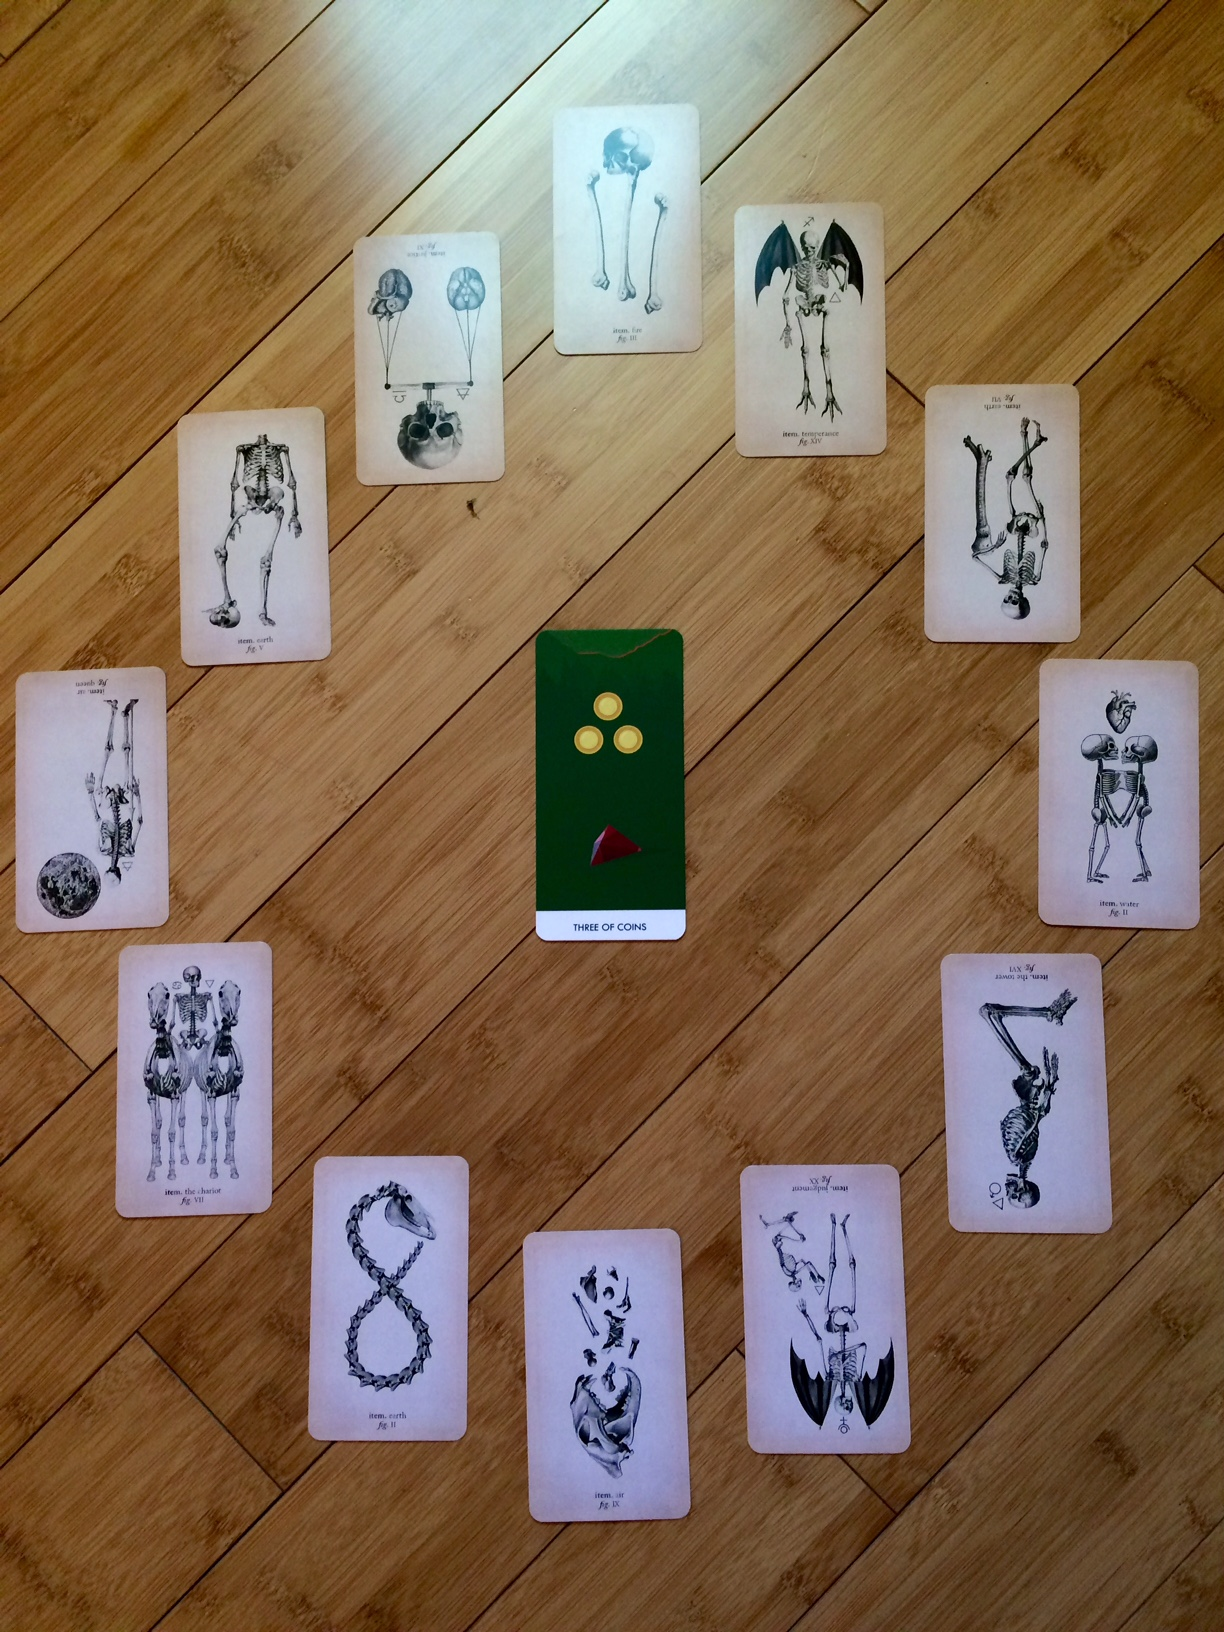 Astrological spread containing cards from the Antique Anatomy Tarot and A Wicked Pack of Tarot Cards